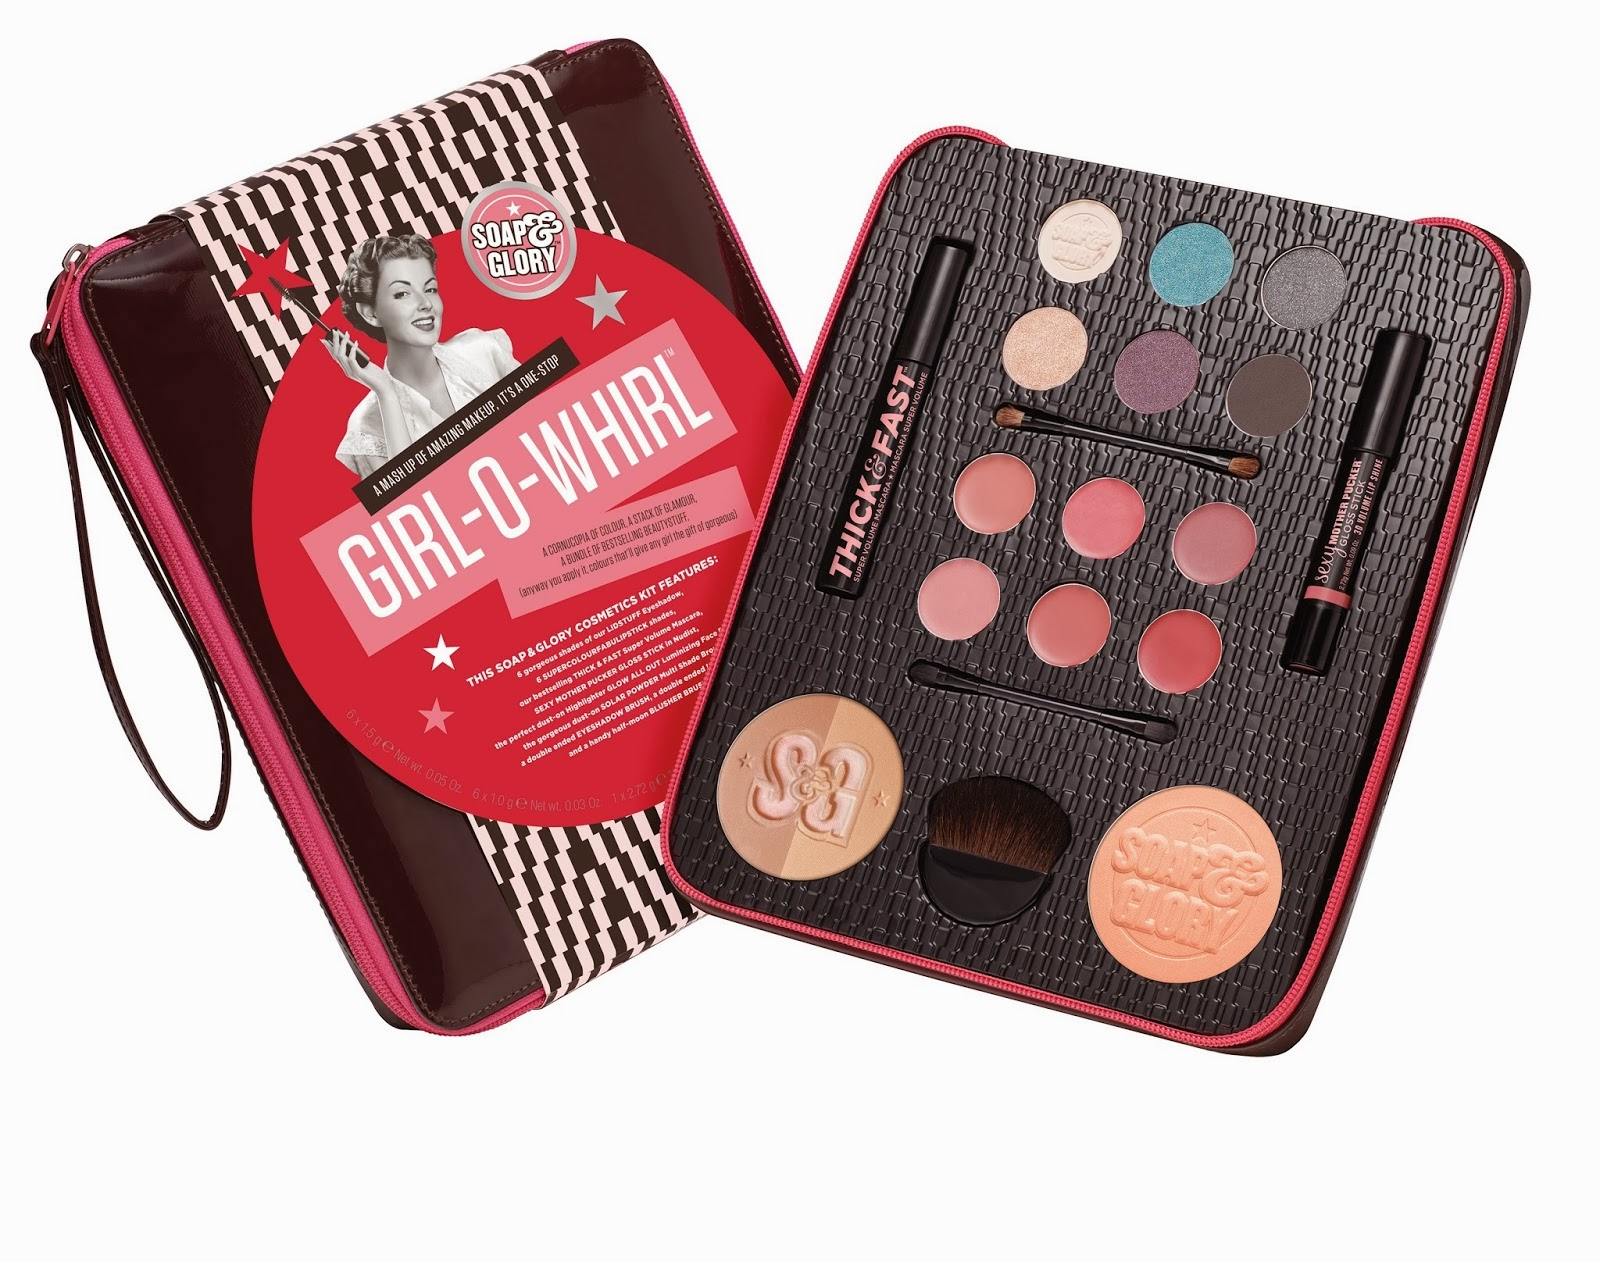 Soap & Glory Girl-O-Whirl